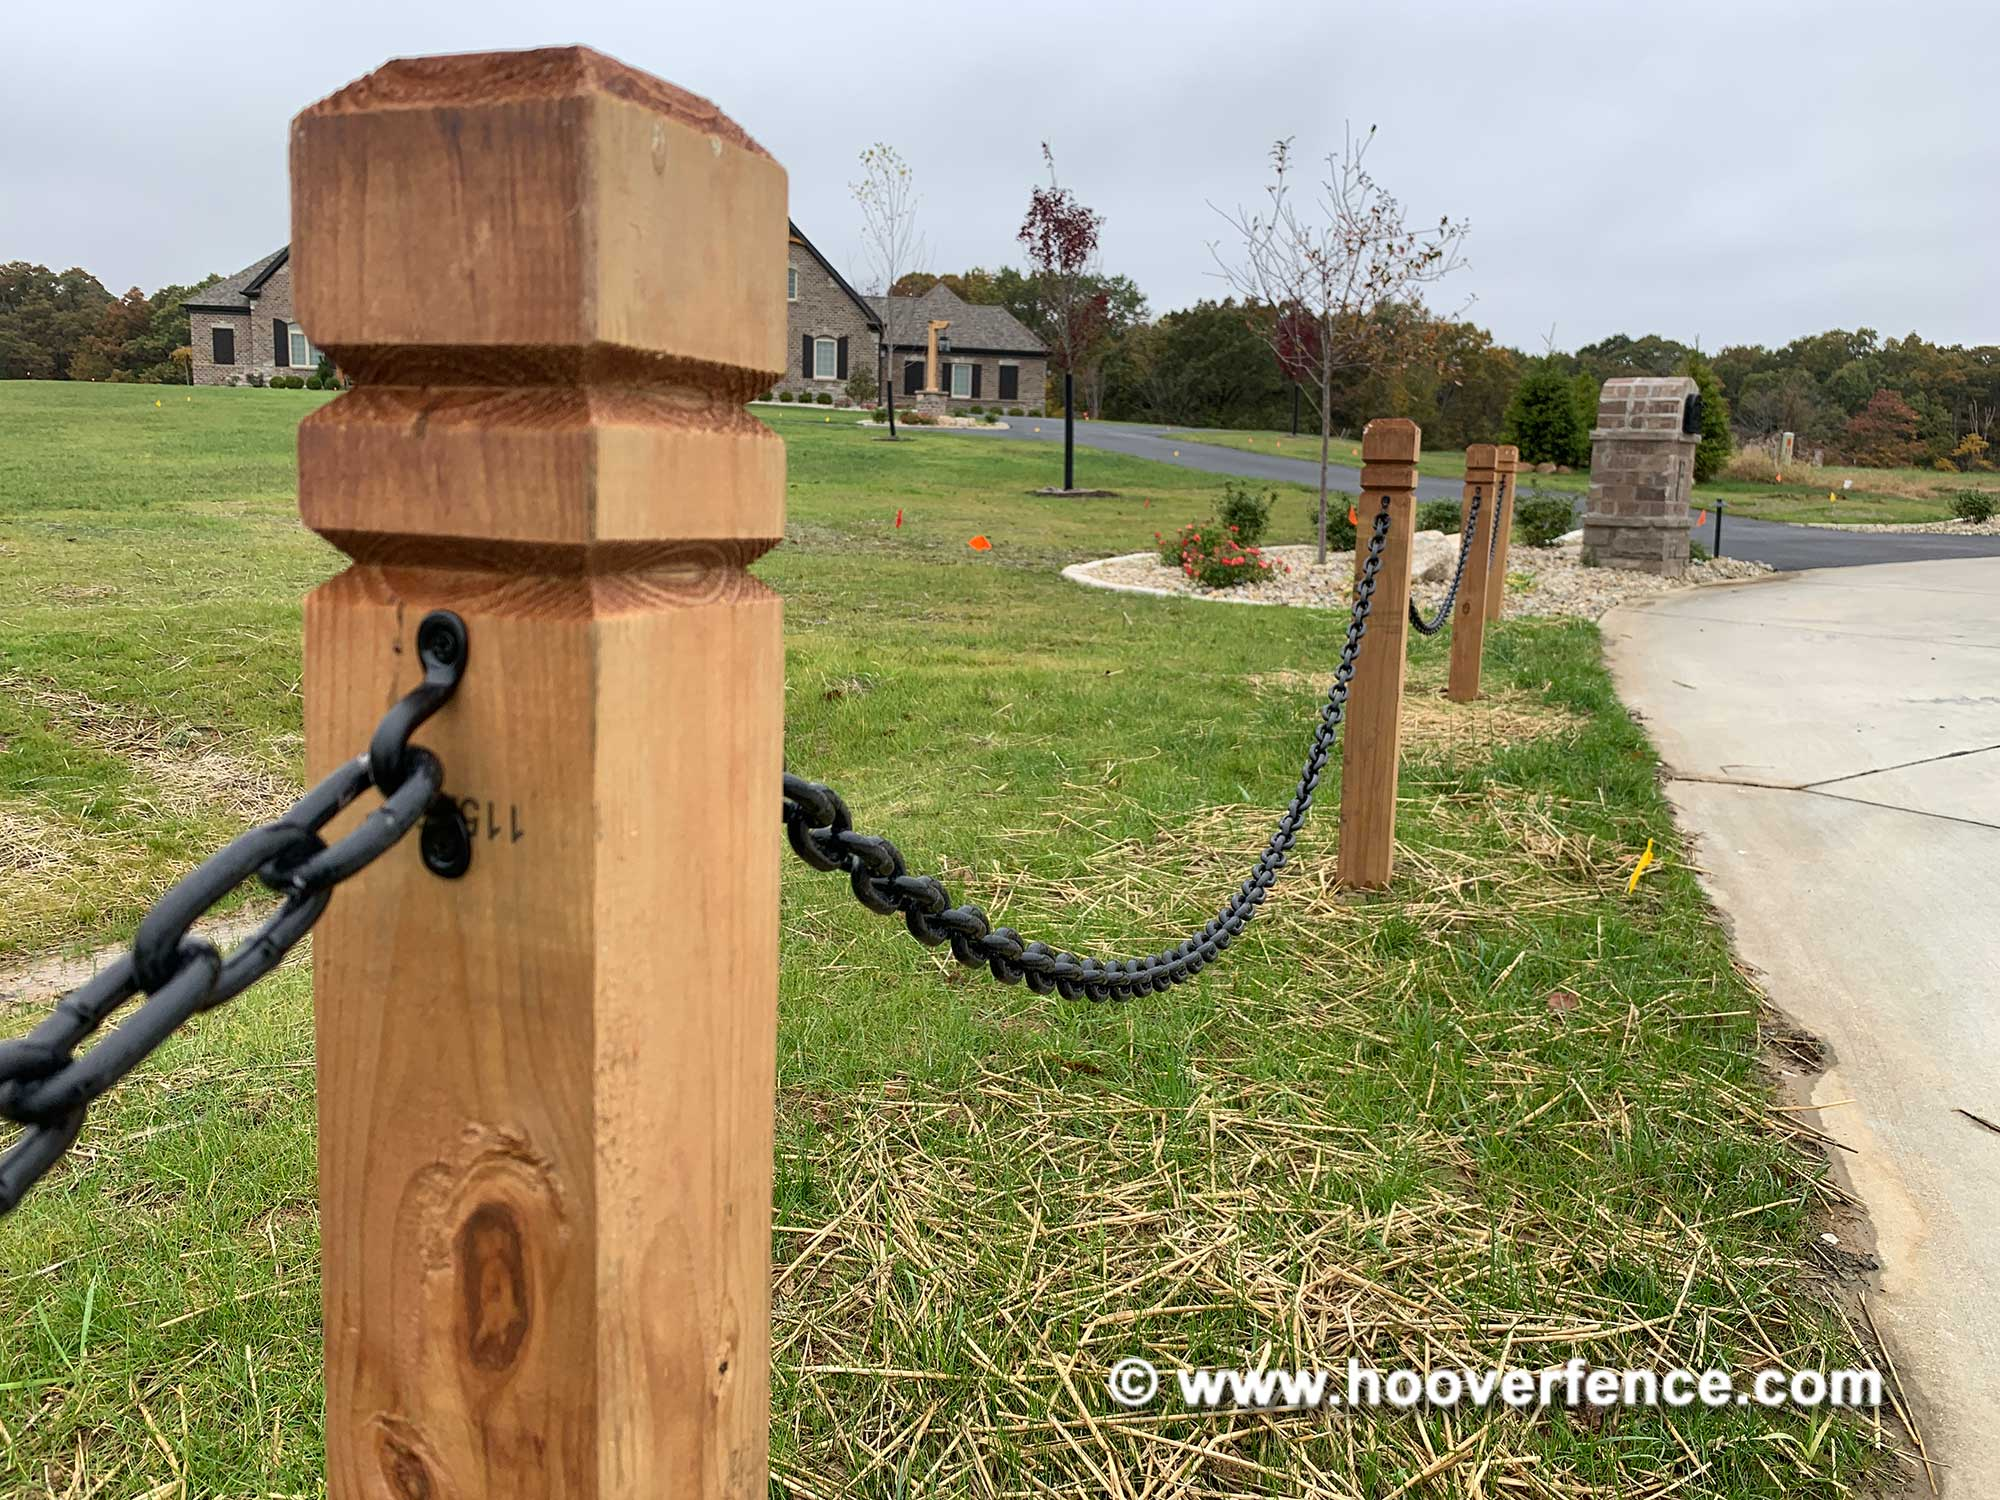 Customer Install - Landscape Chain Installed Using Snug Cottage 3484-B316 Link to Screws